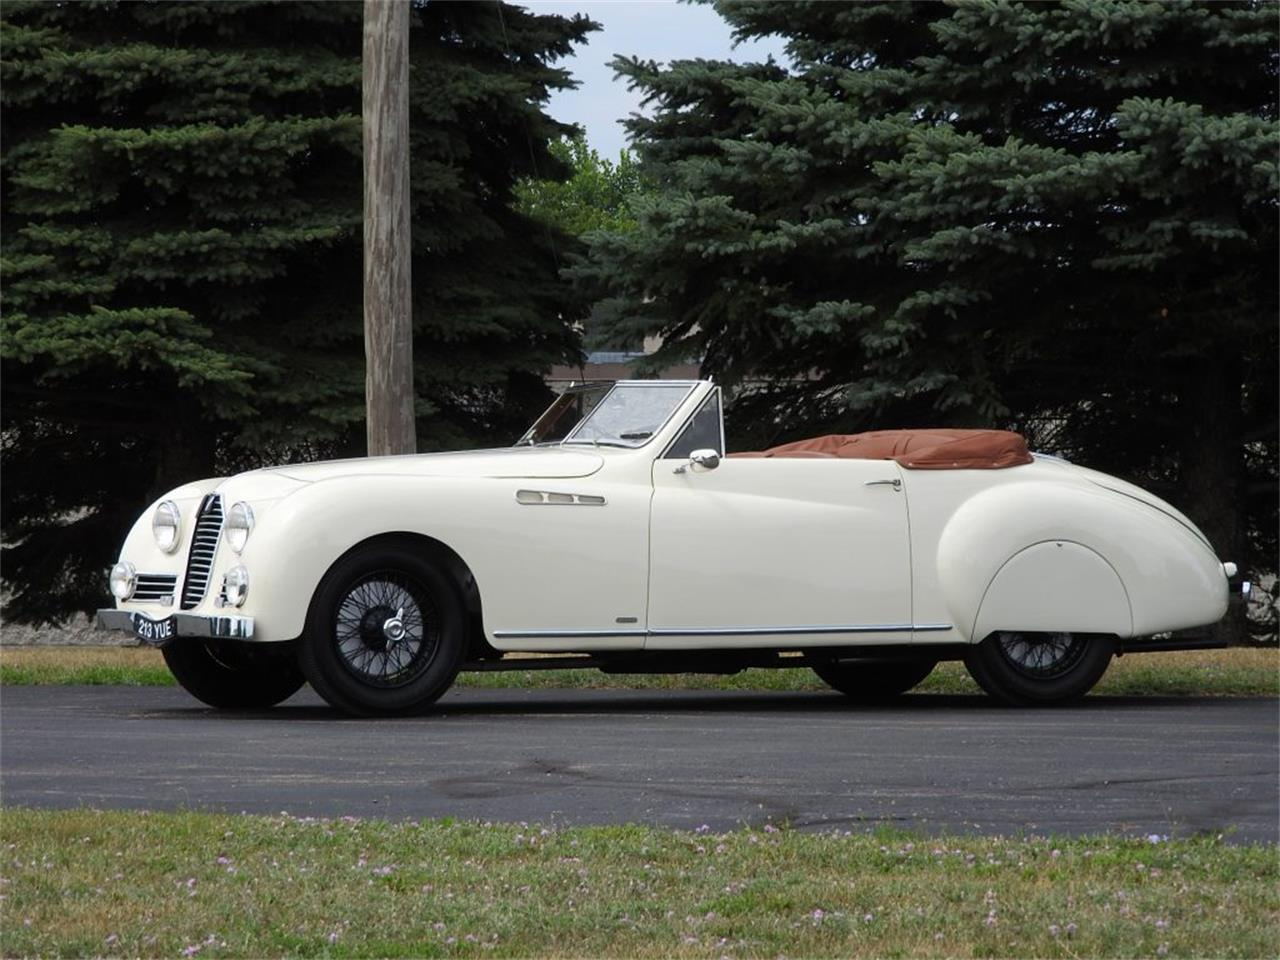 Large Picture of Classic '50 Talbot-Lago Roadster Offered by Nostalgic Motoring Ltd. - OCHL